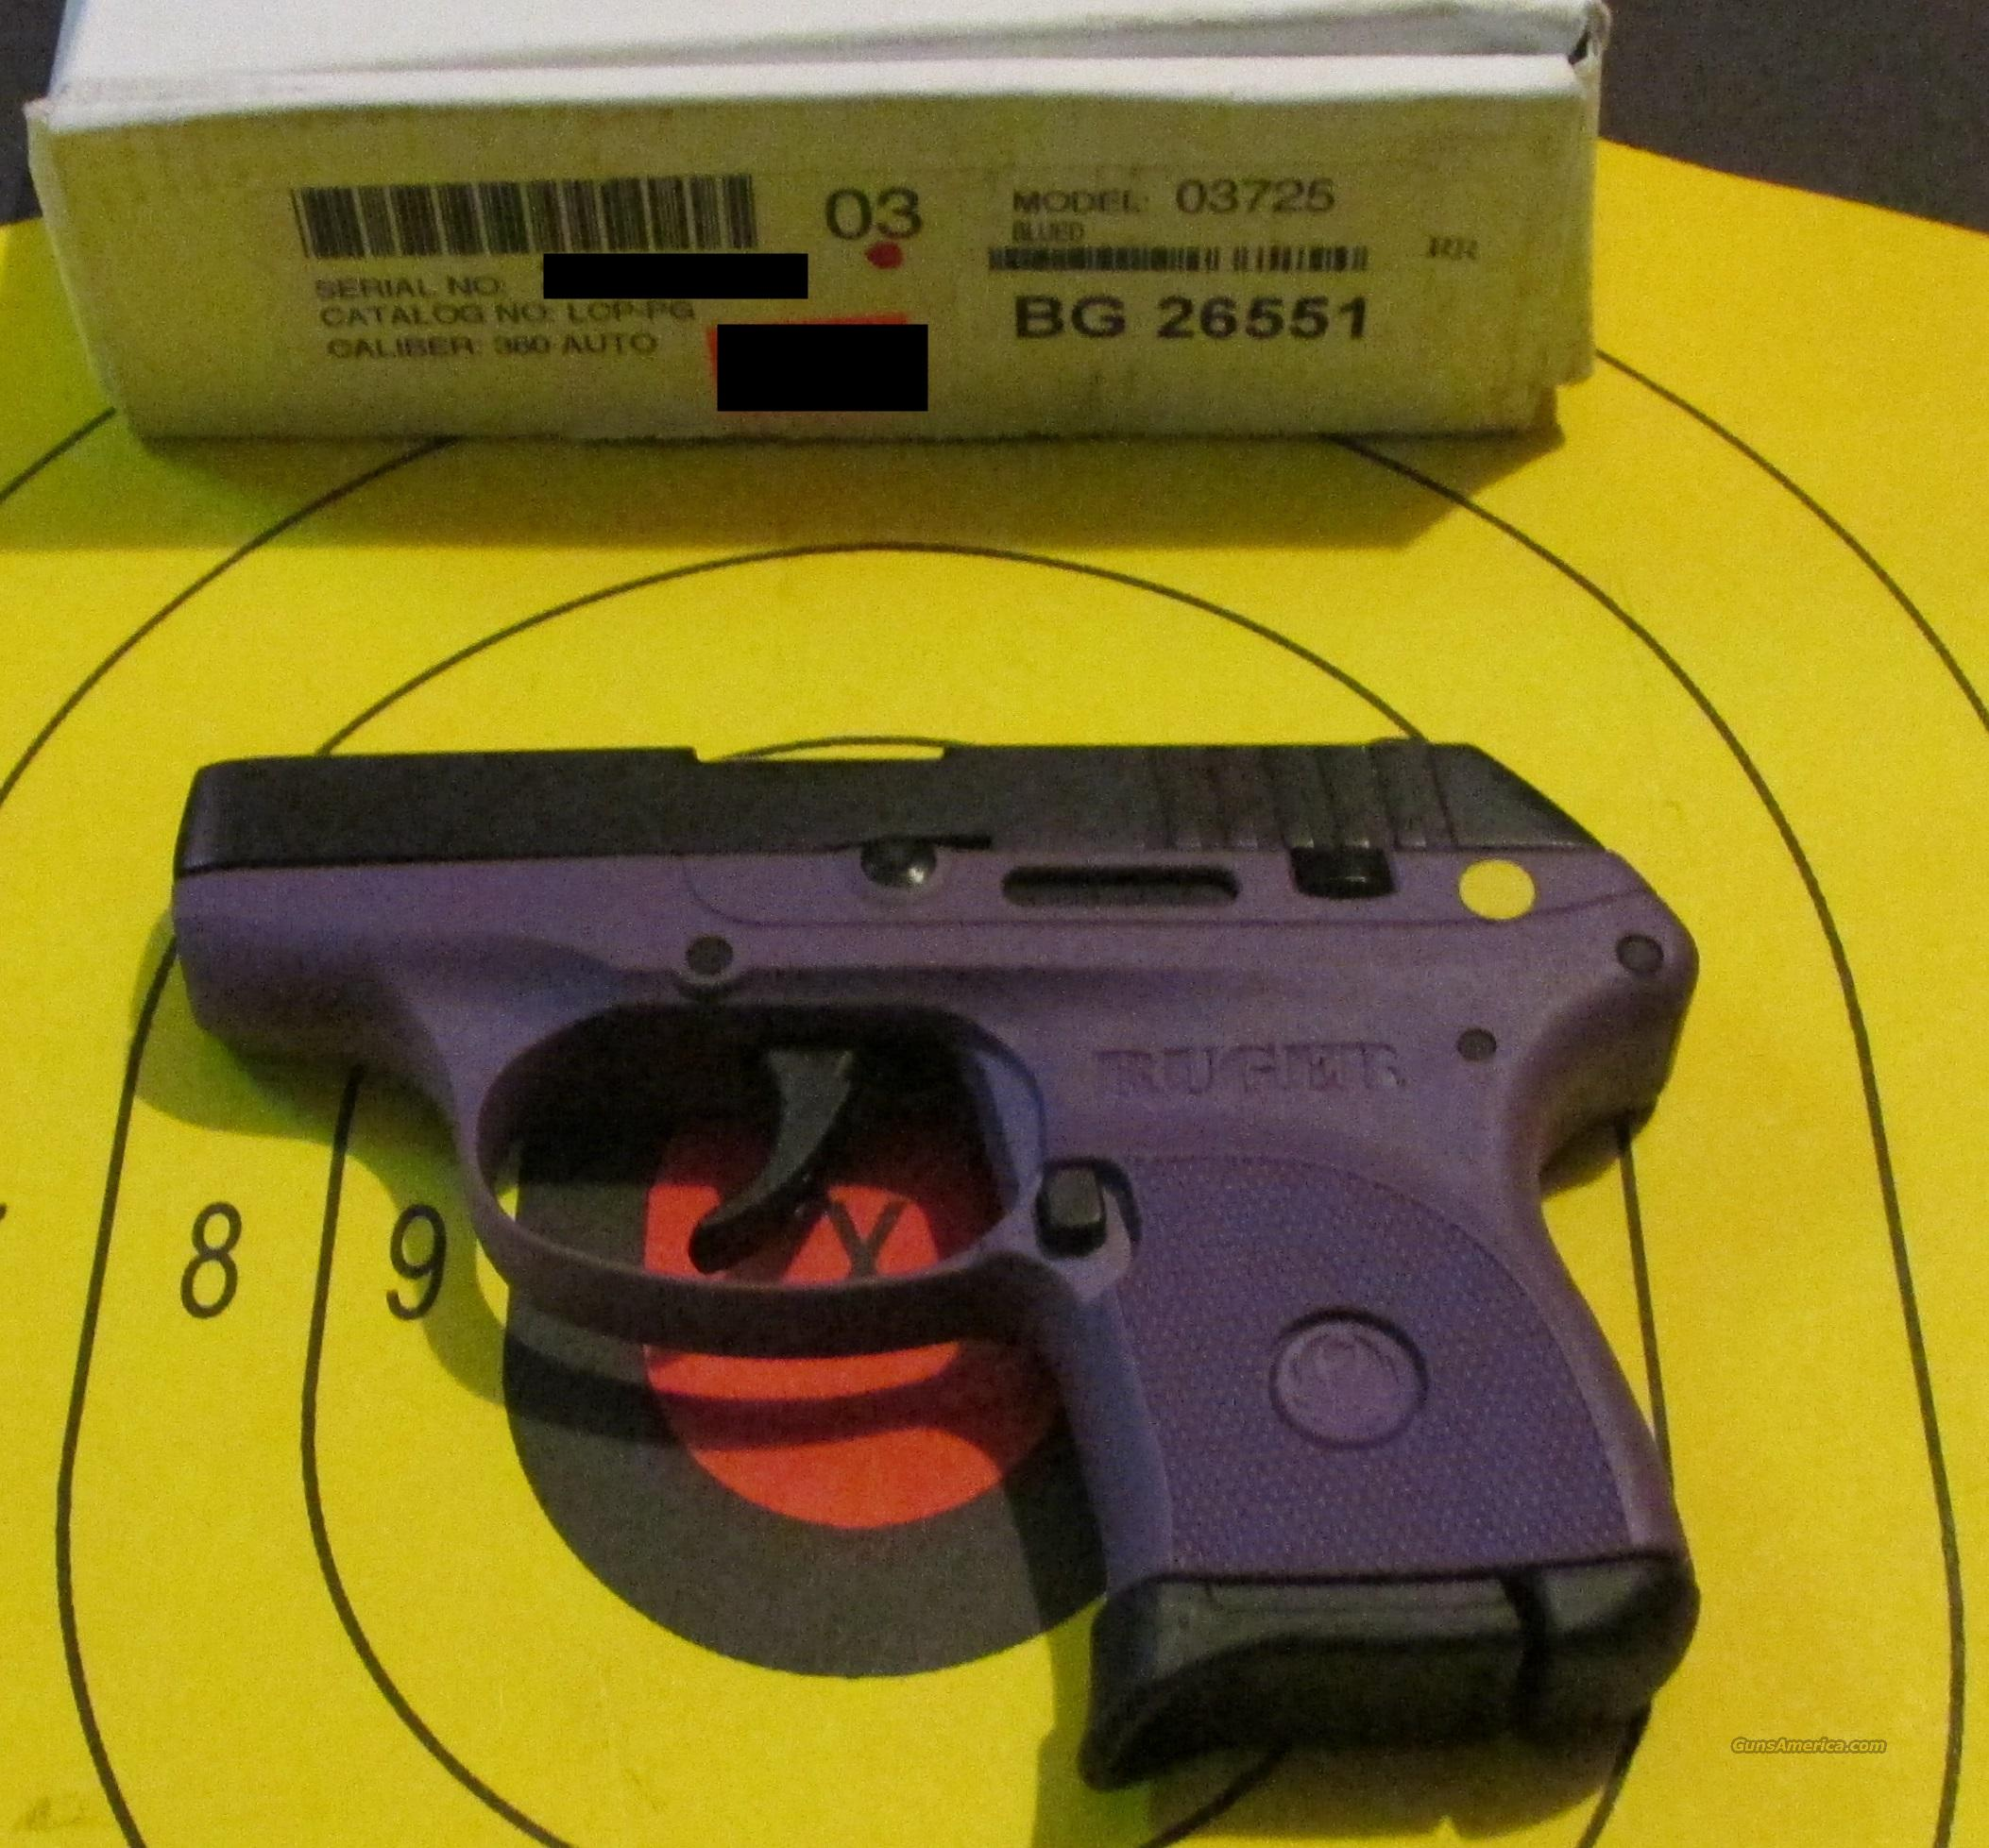 RUGER LCP-PG (03725) PURPLE .380ACP  Guns > Pistols > Ruger Semi-Auto Pistols > LCP